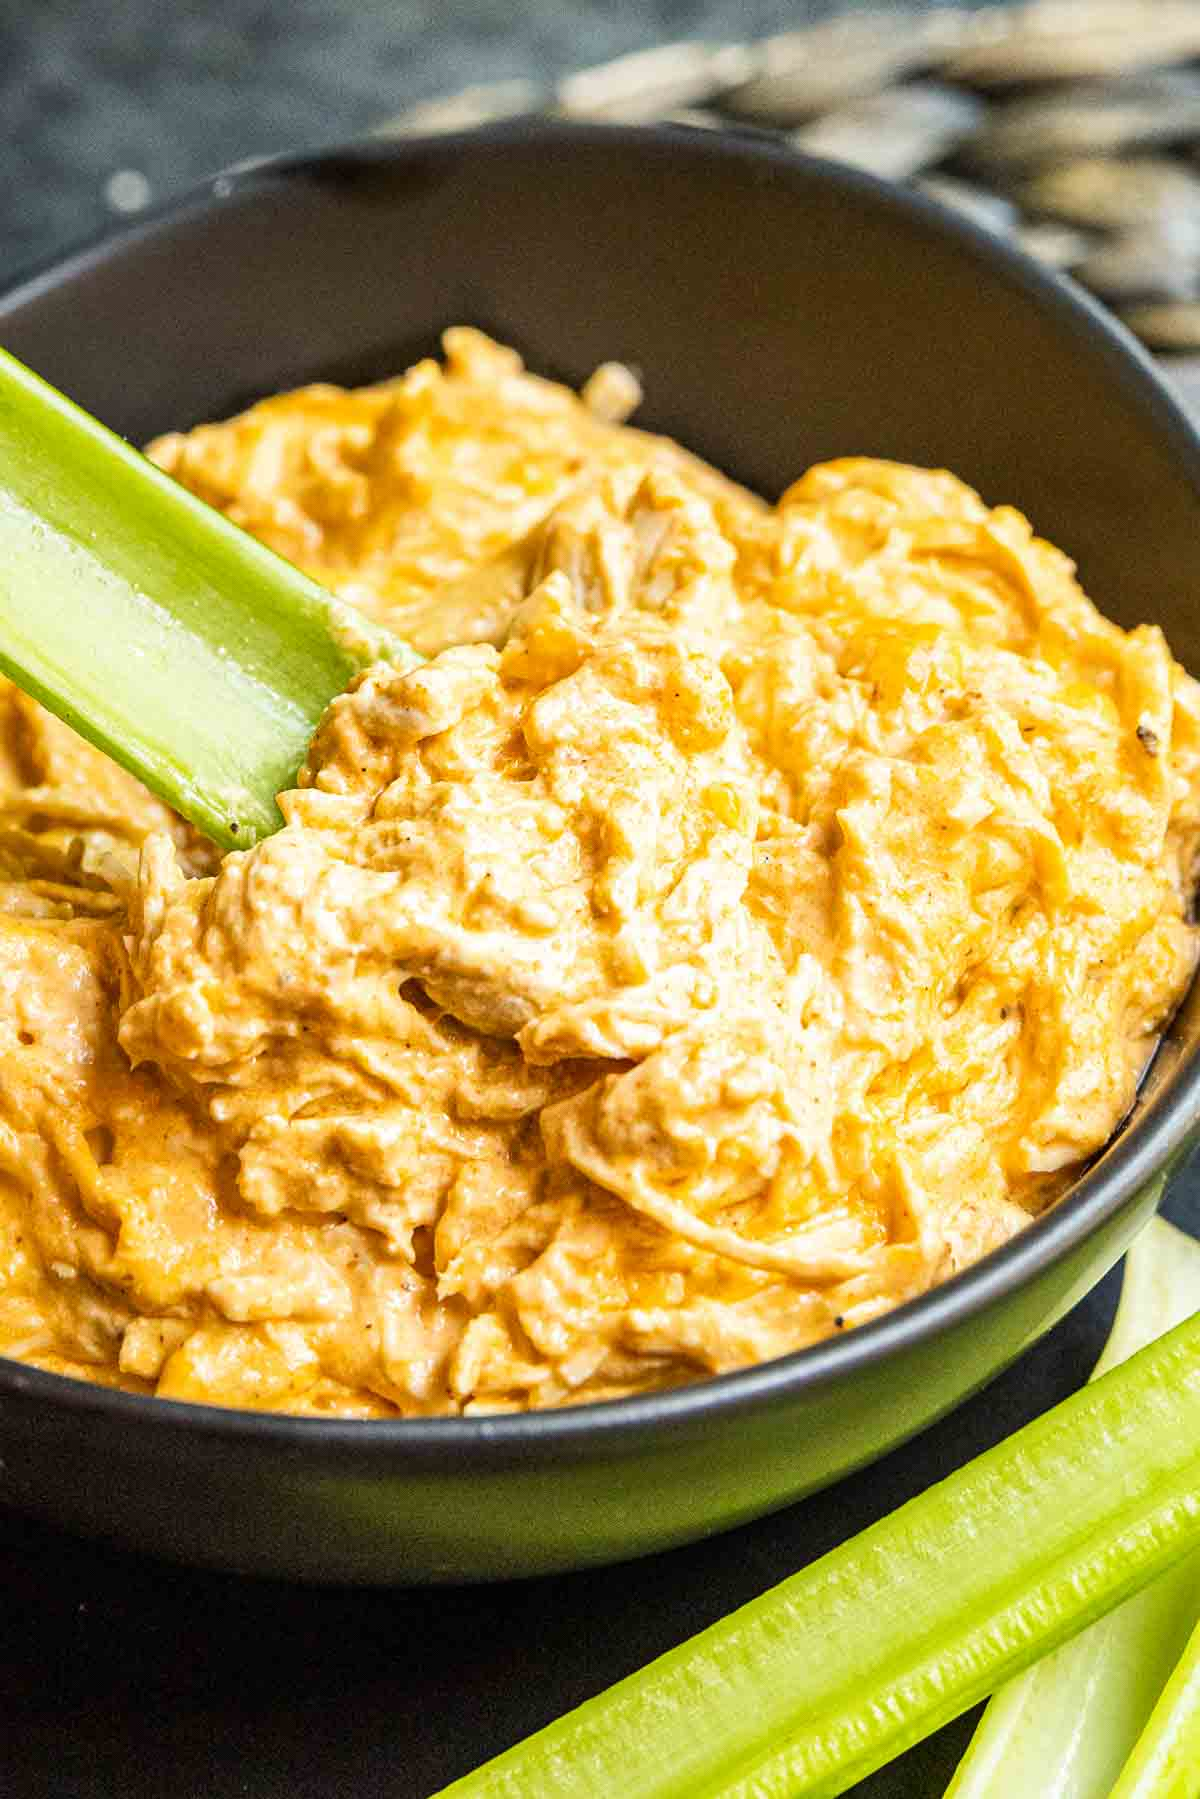 bowl of Instant Pot Buffalo Chicken Dip with celery stick in it